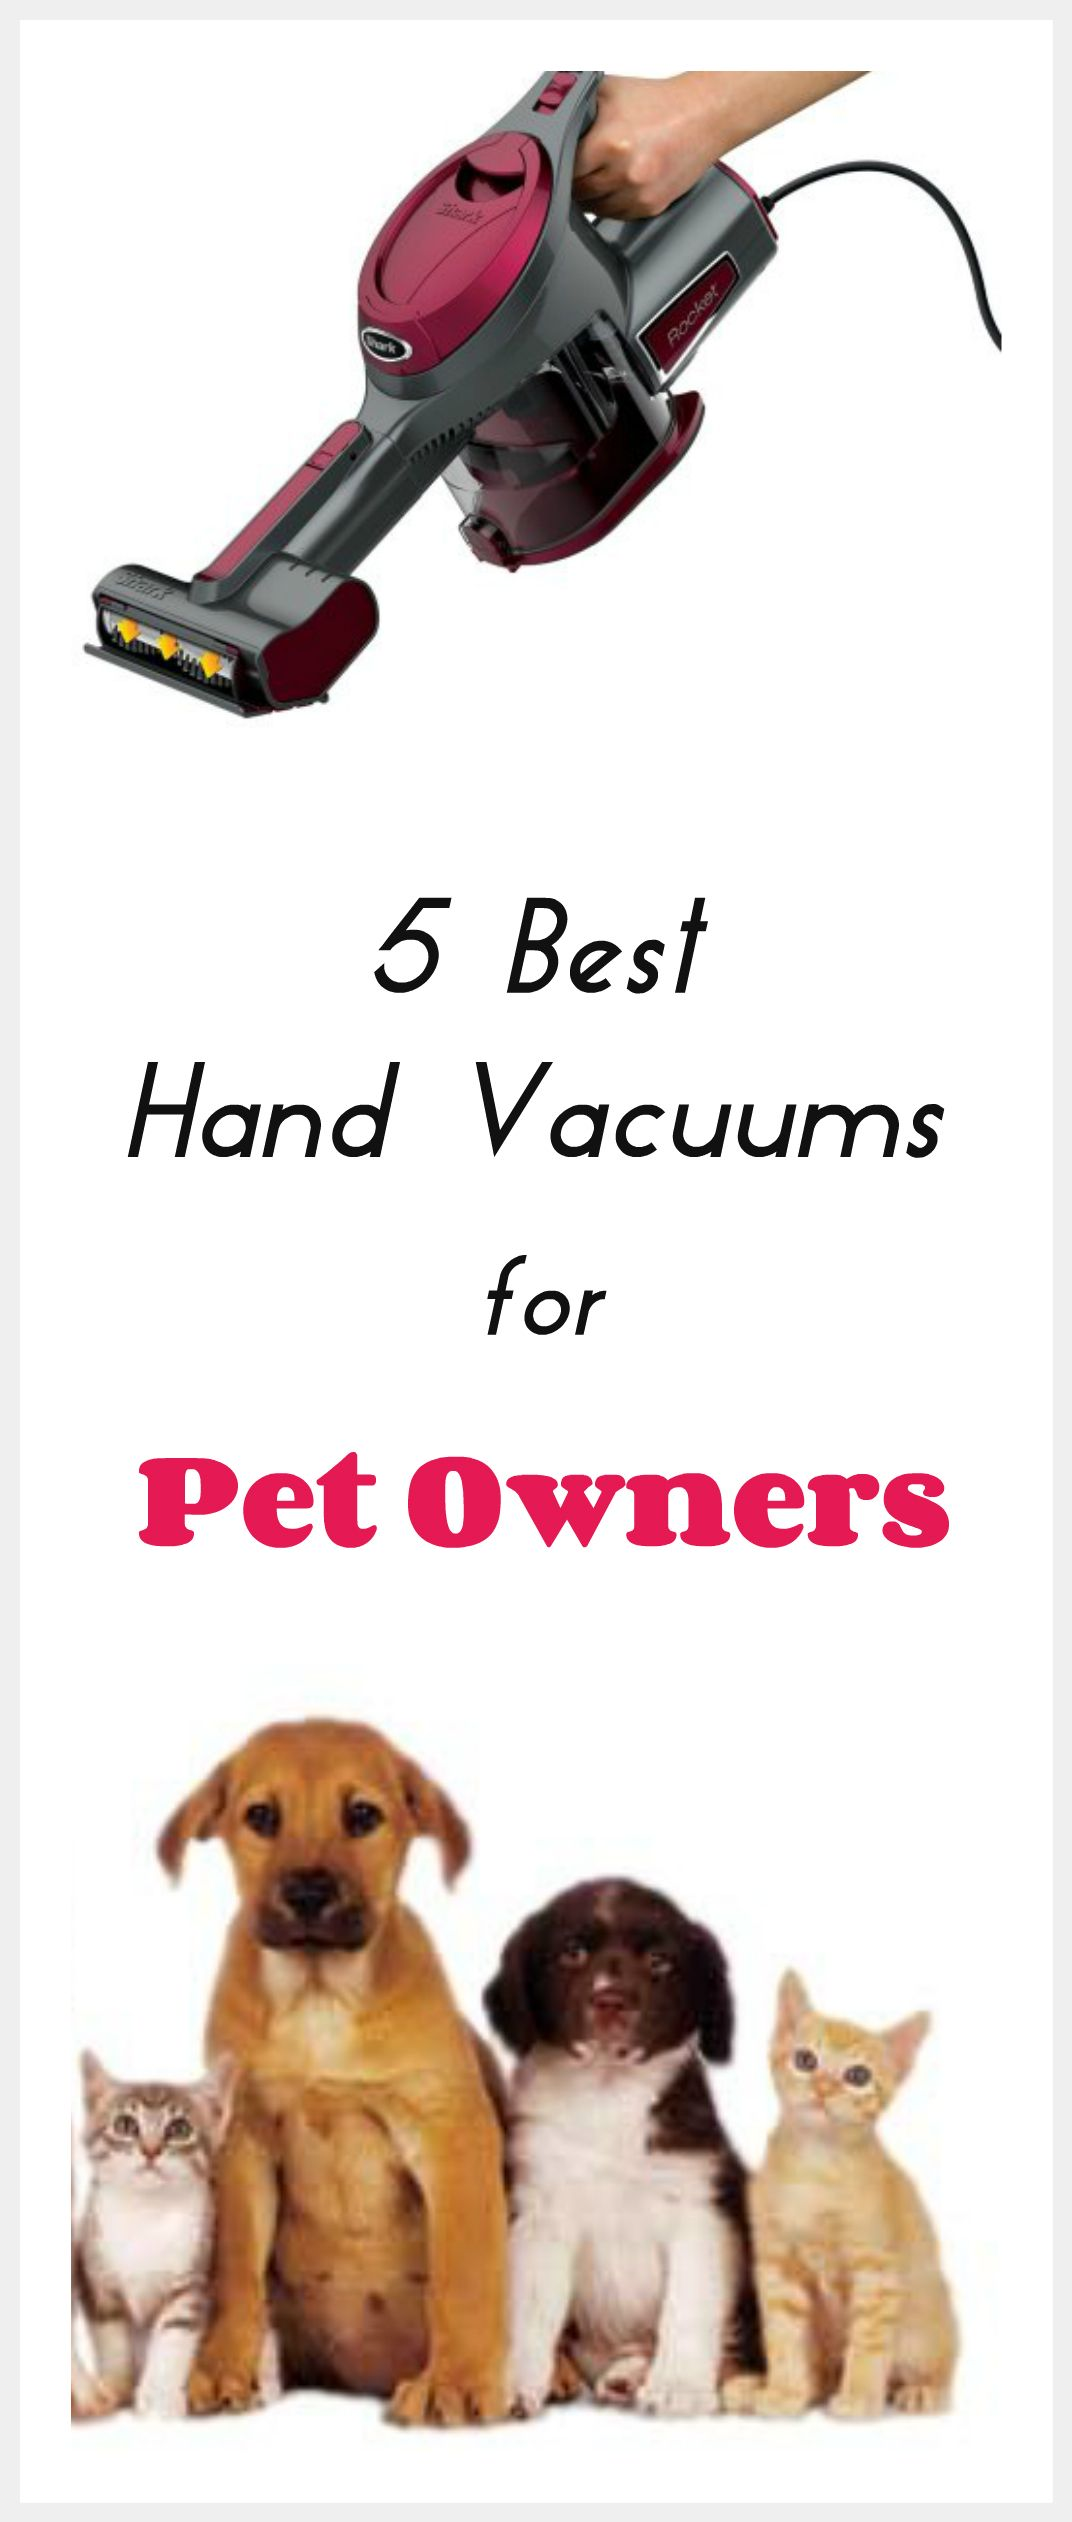 5 Best Handheld Vacuum Cleaners For Pet Owners Best